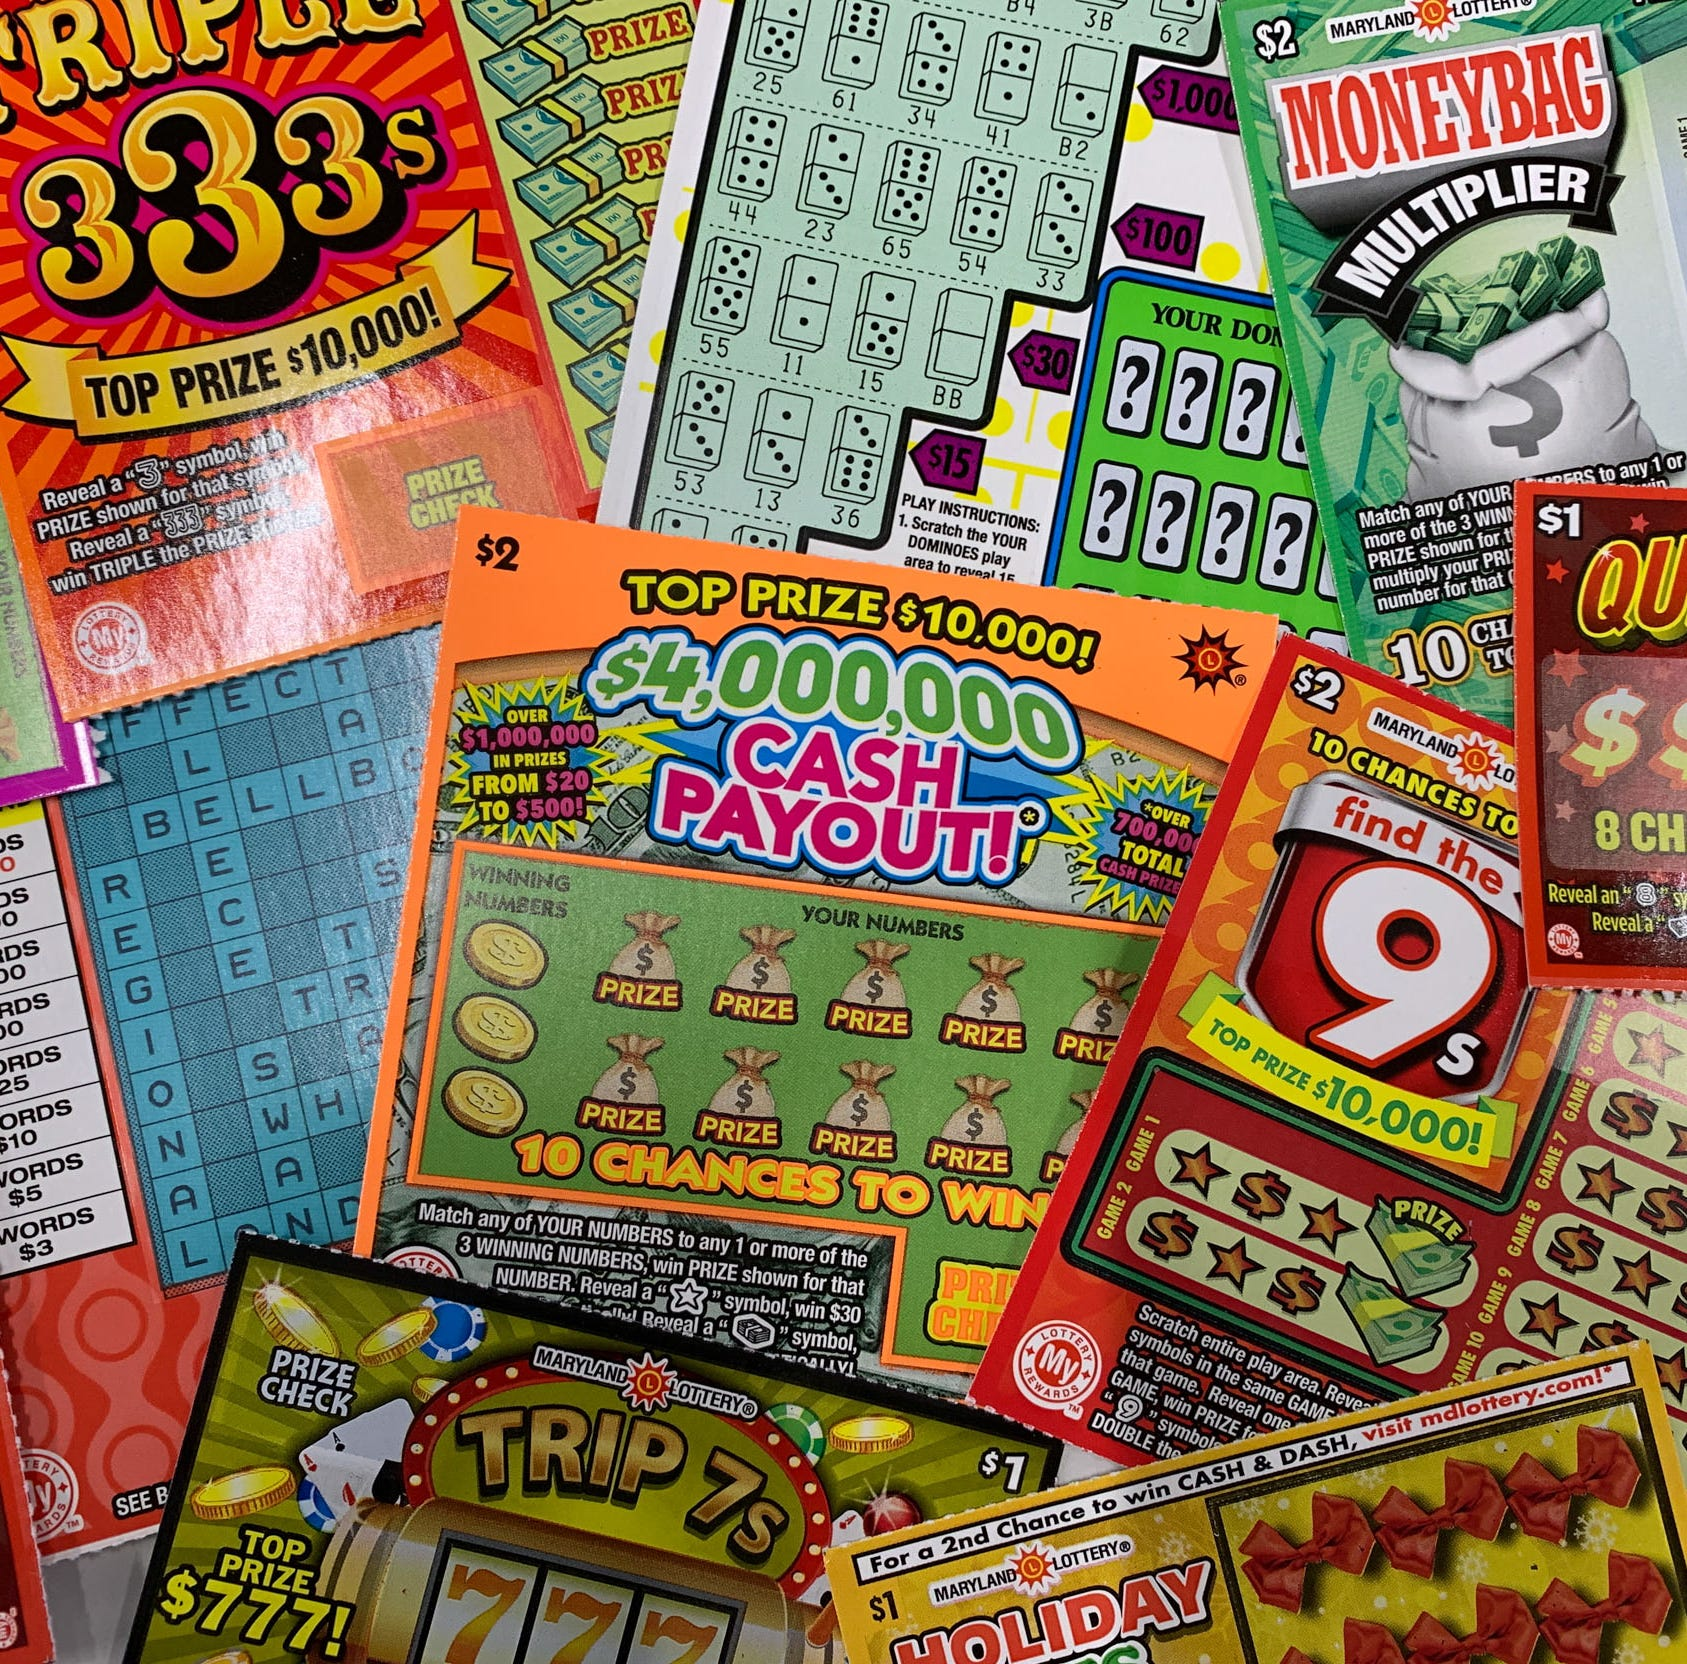 Want to win the lottery in Maryland? Here's where winners cash in their tickets